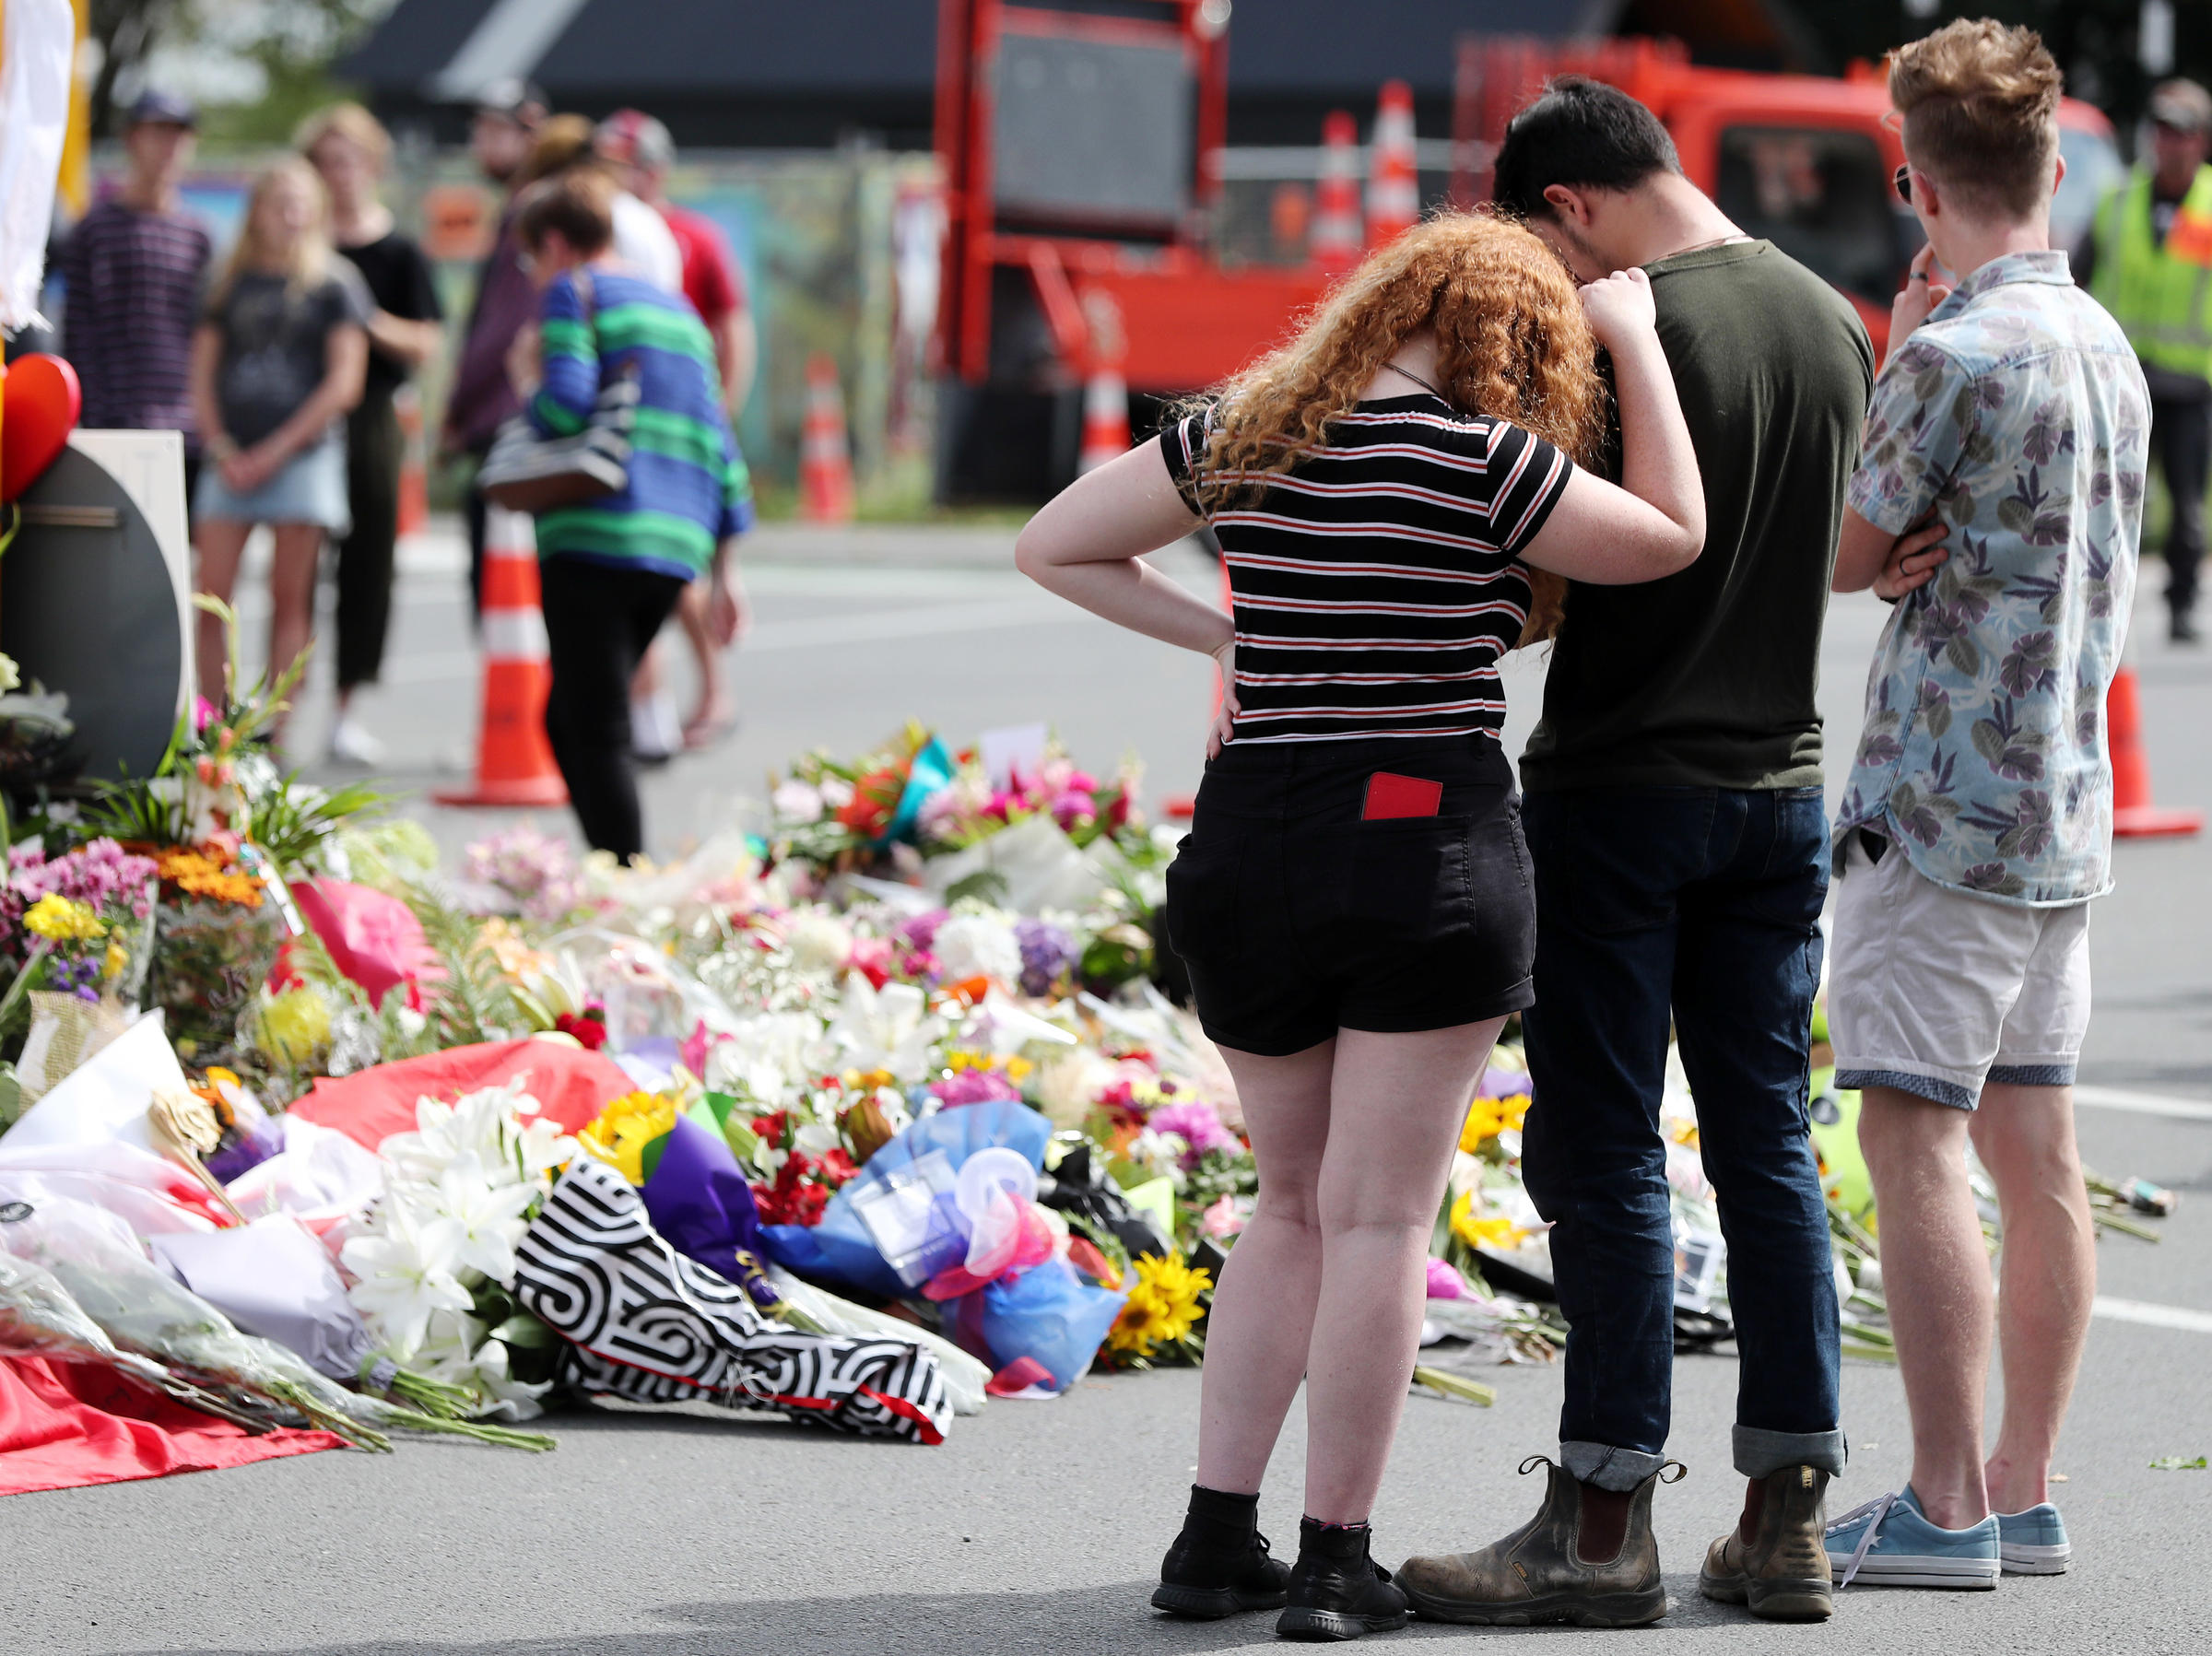 New Zealand Mosque Attack Hd: As Families Learn Fates Of Loved Ones, New Zealand Mourns